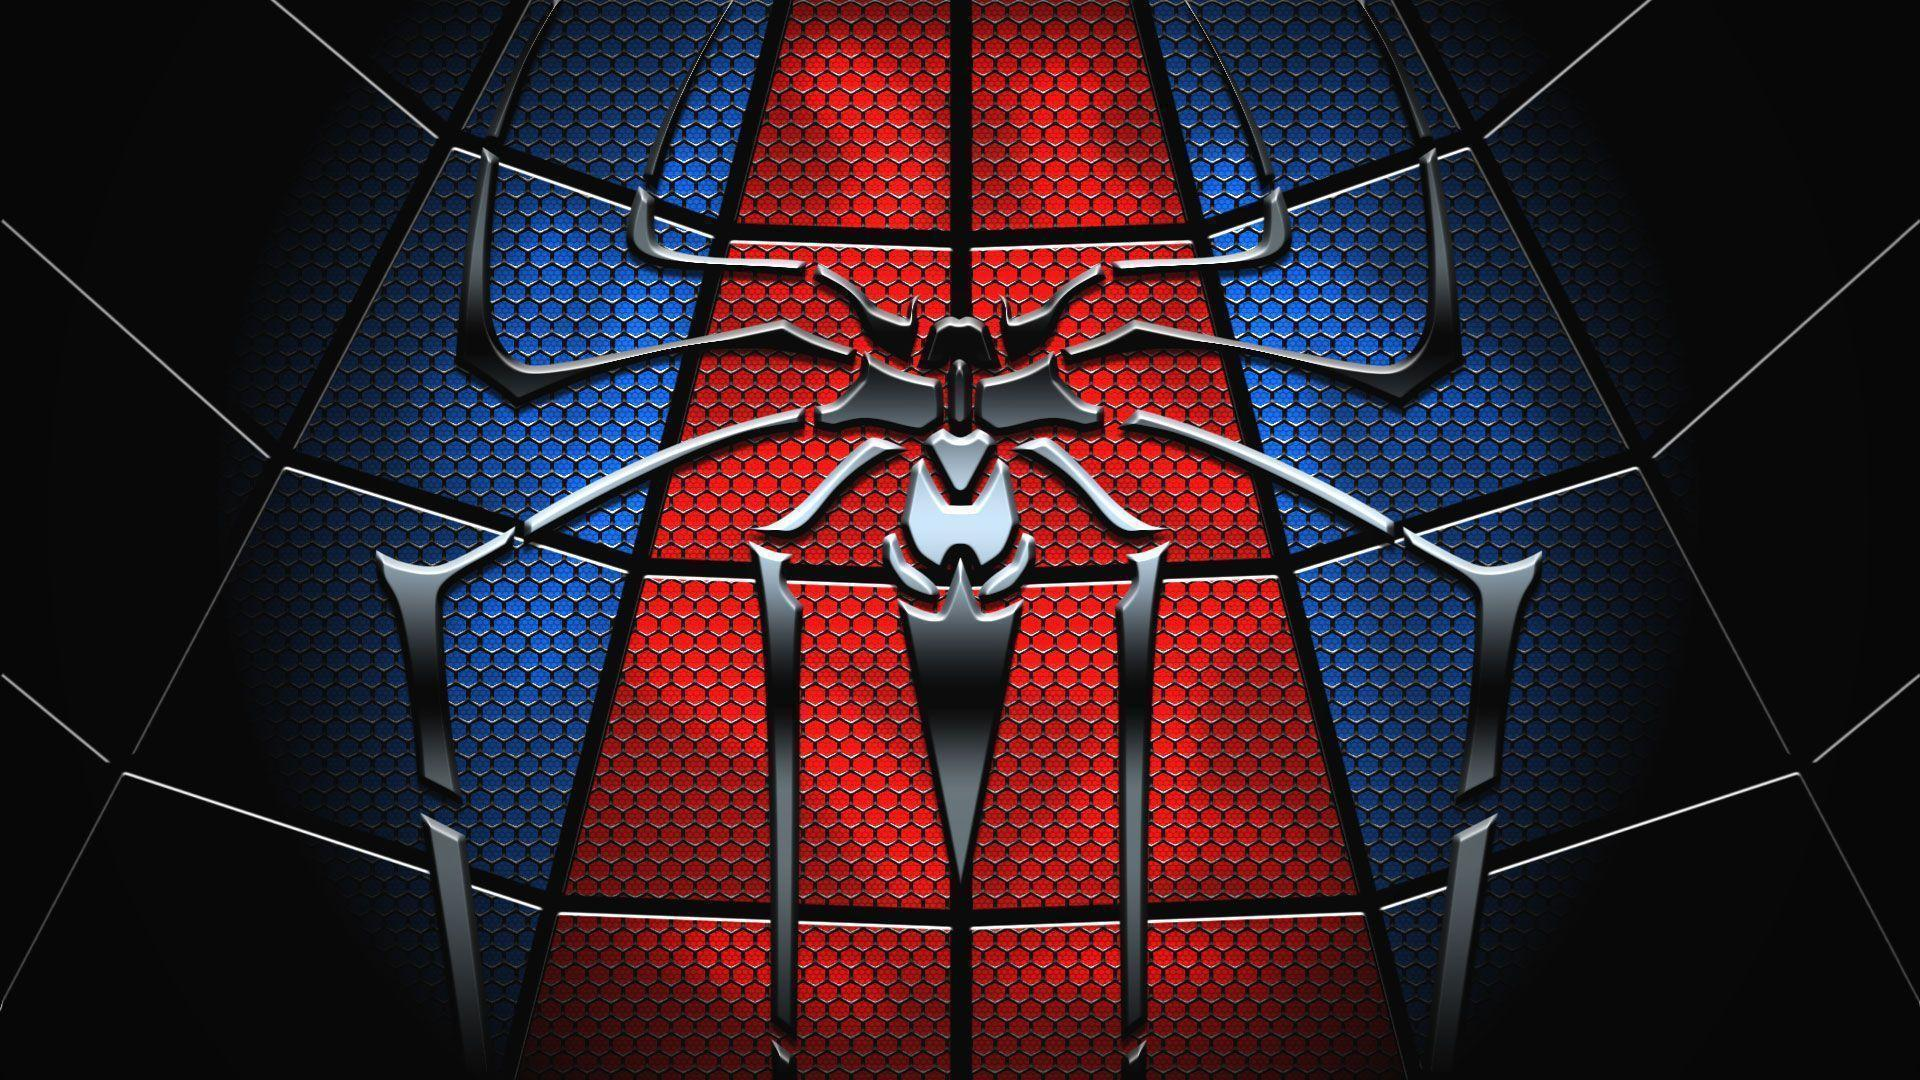 Game Of Spider Man Hd Wallpaper: Spiderman Logo Wallpapers